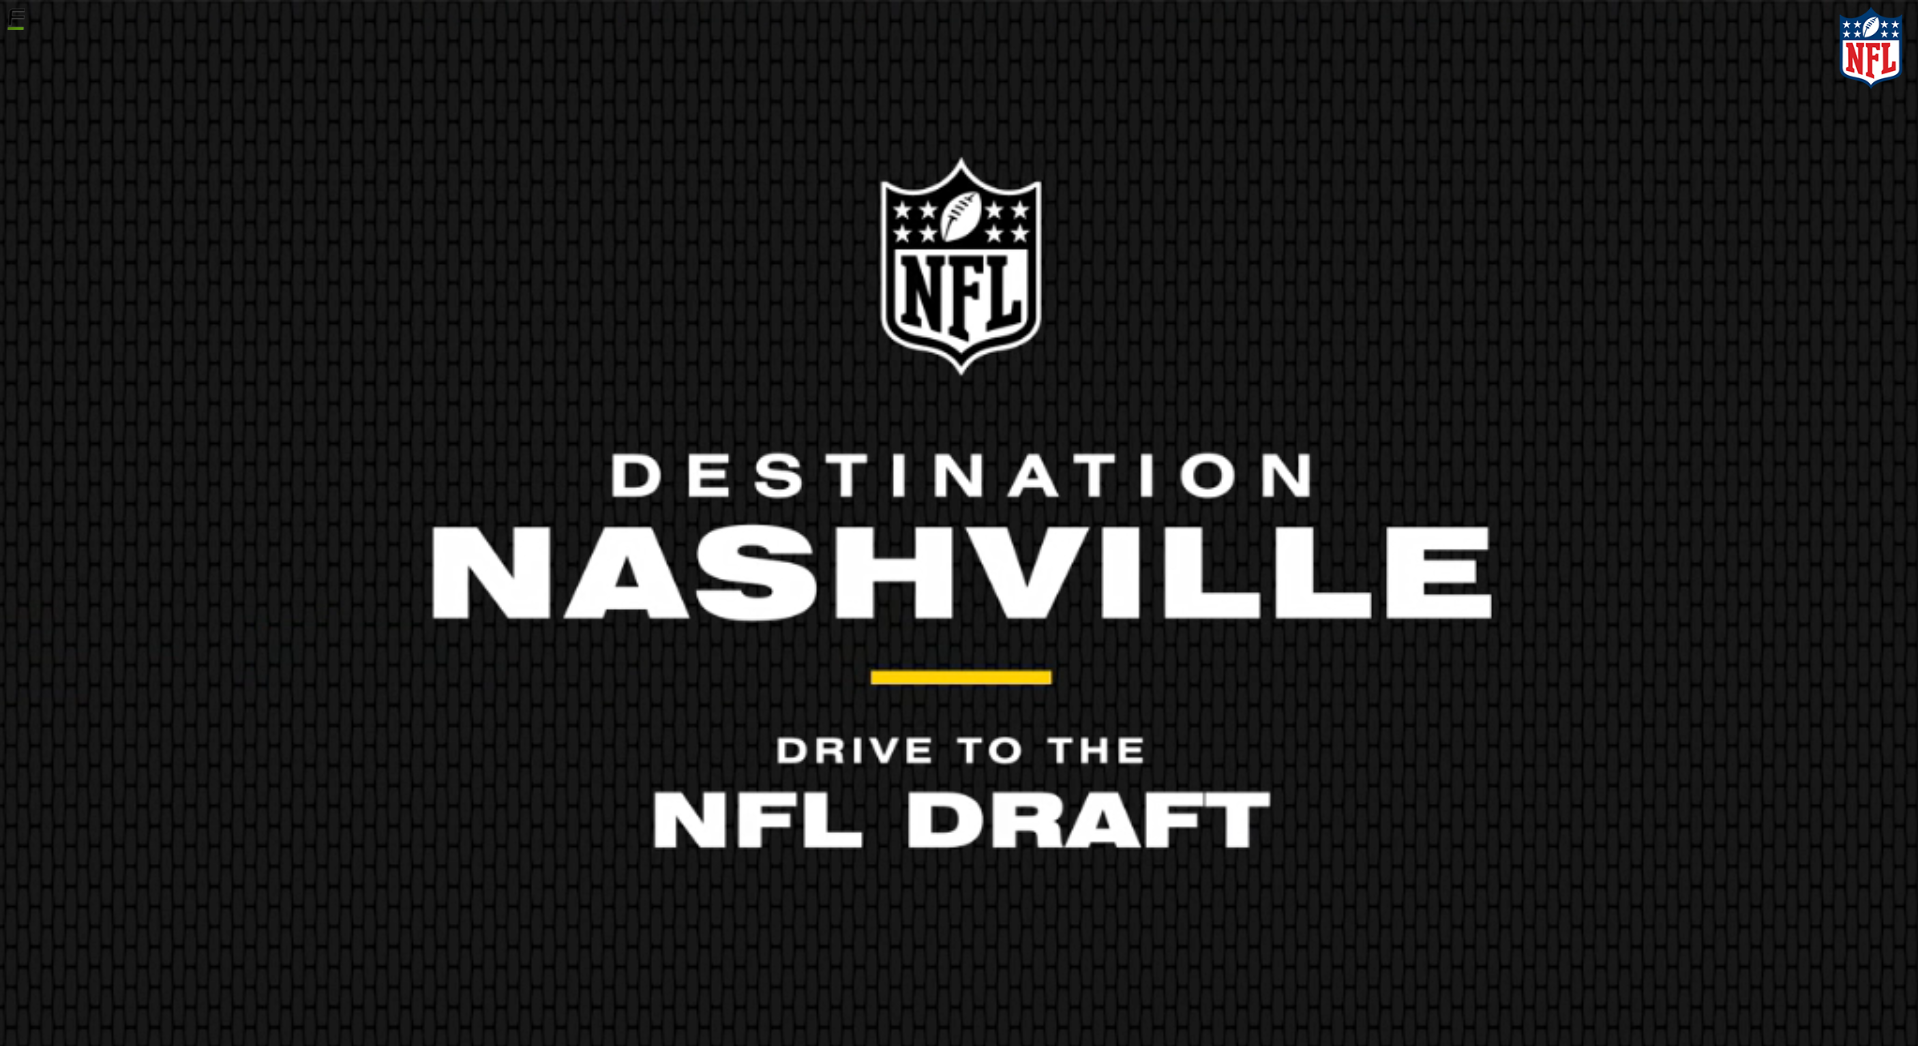 Destination Nashville